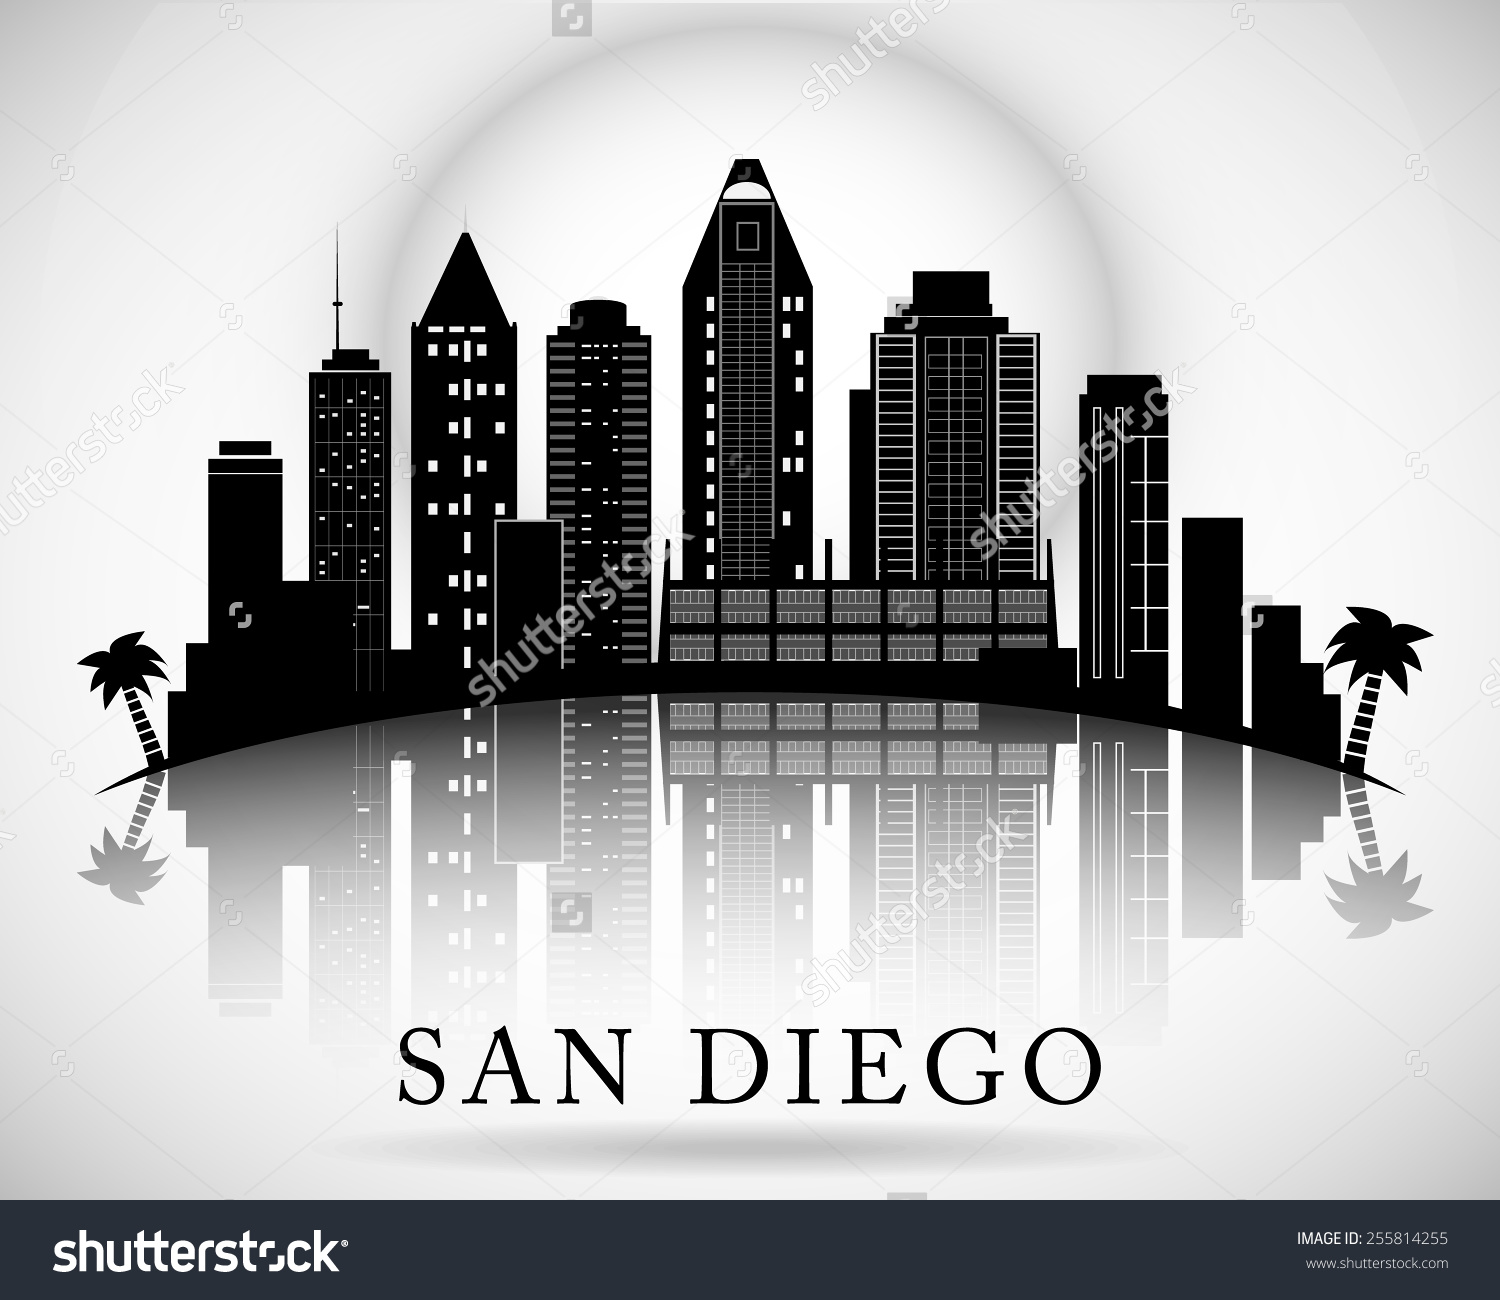 San Diego clipart #20, Download drawings